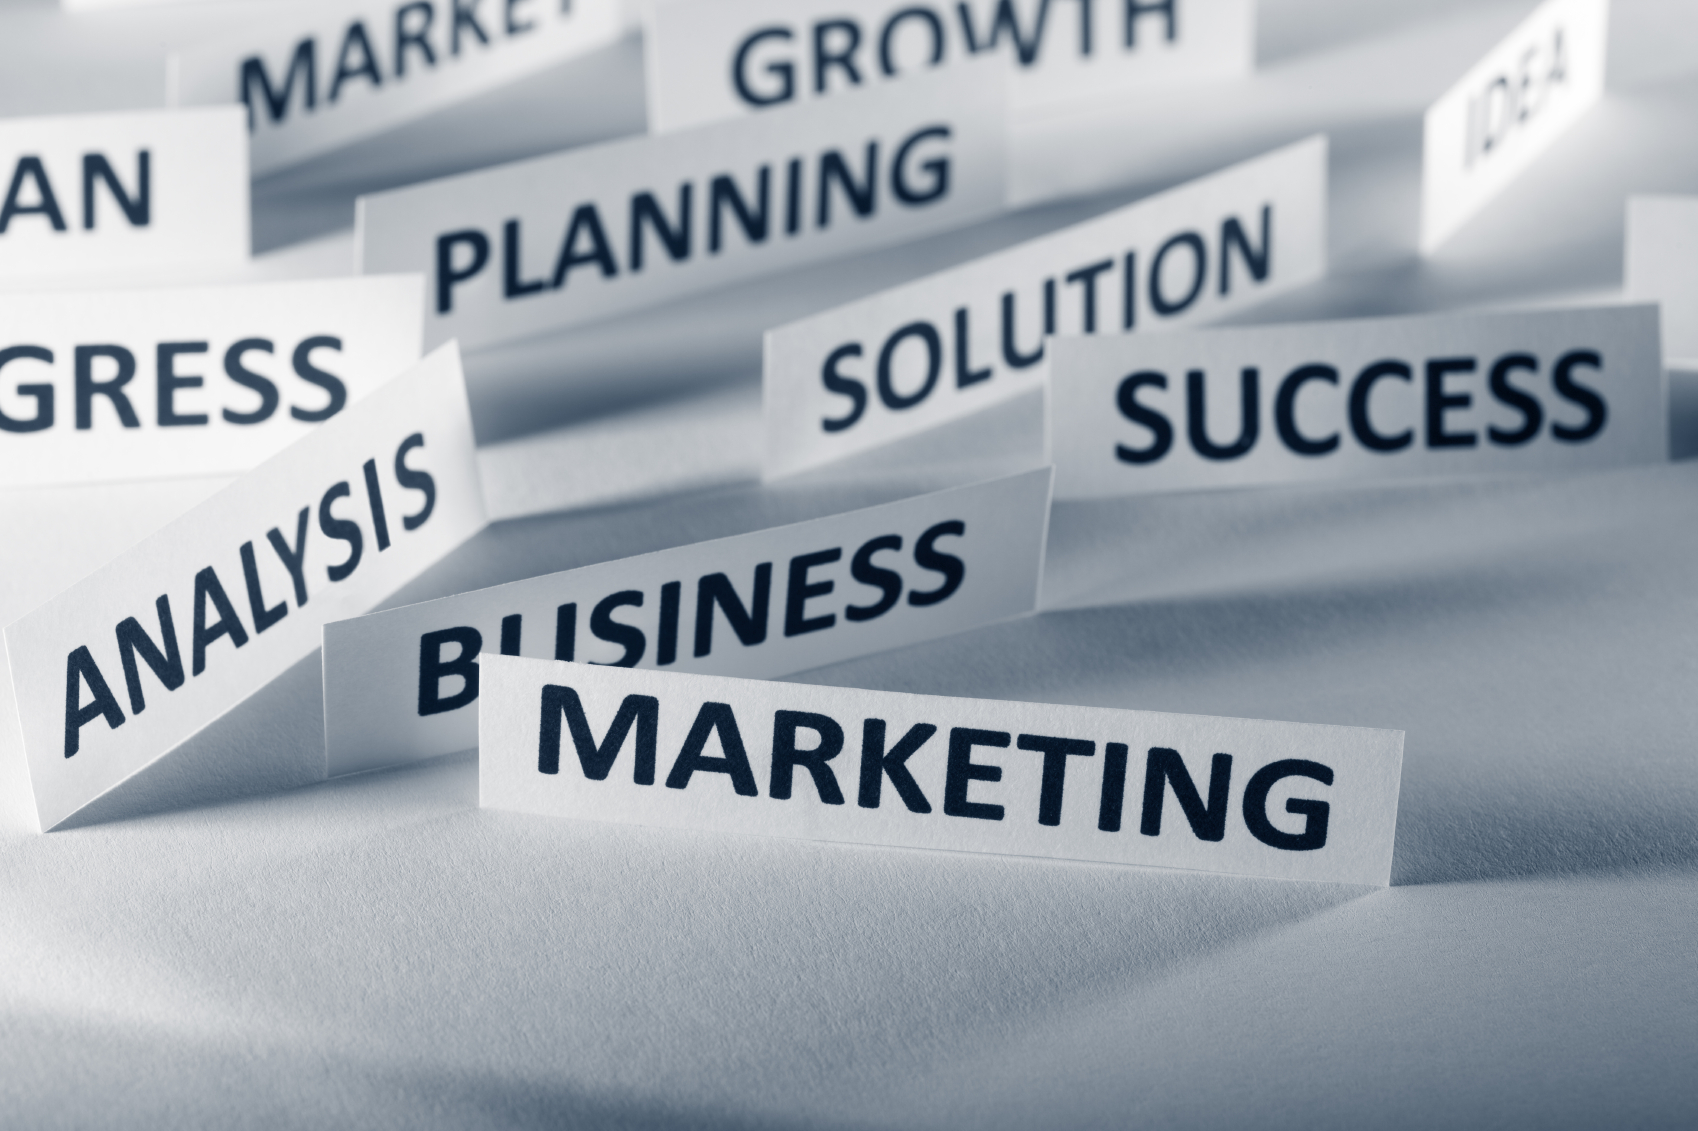 About Insight Marketing Solutions